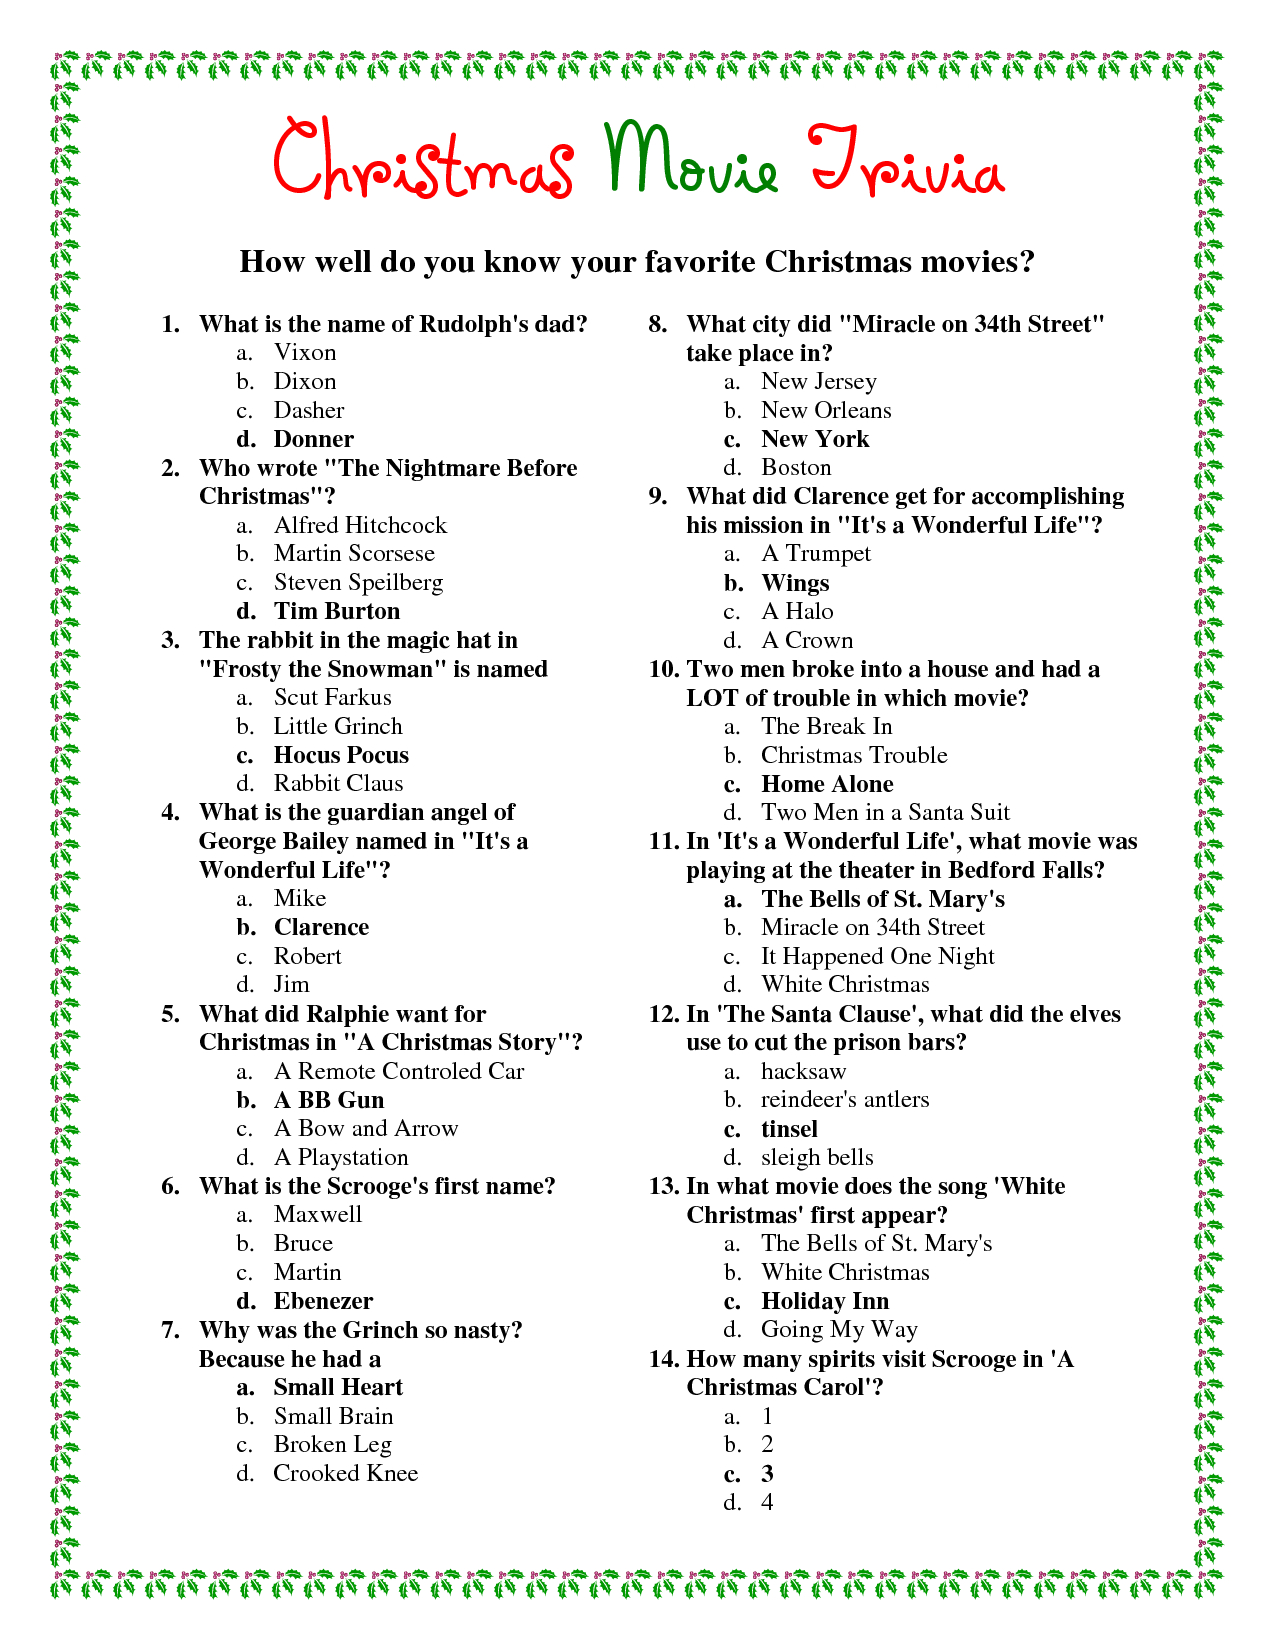 Ideas Collection Easy Christmas Trivia Questions And Answers - Free Printable Trivia Questions And Answers